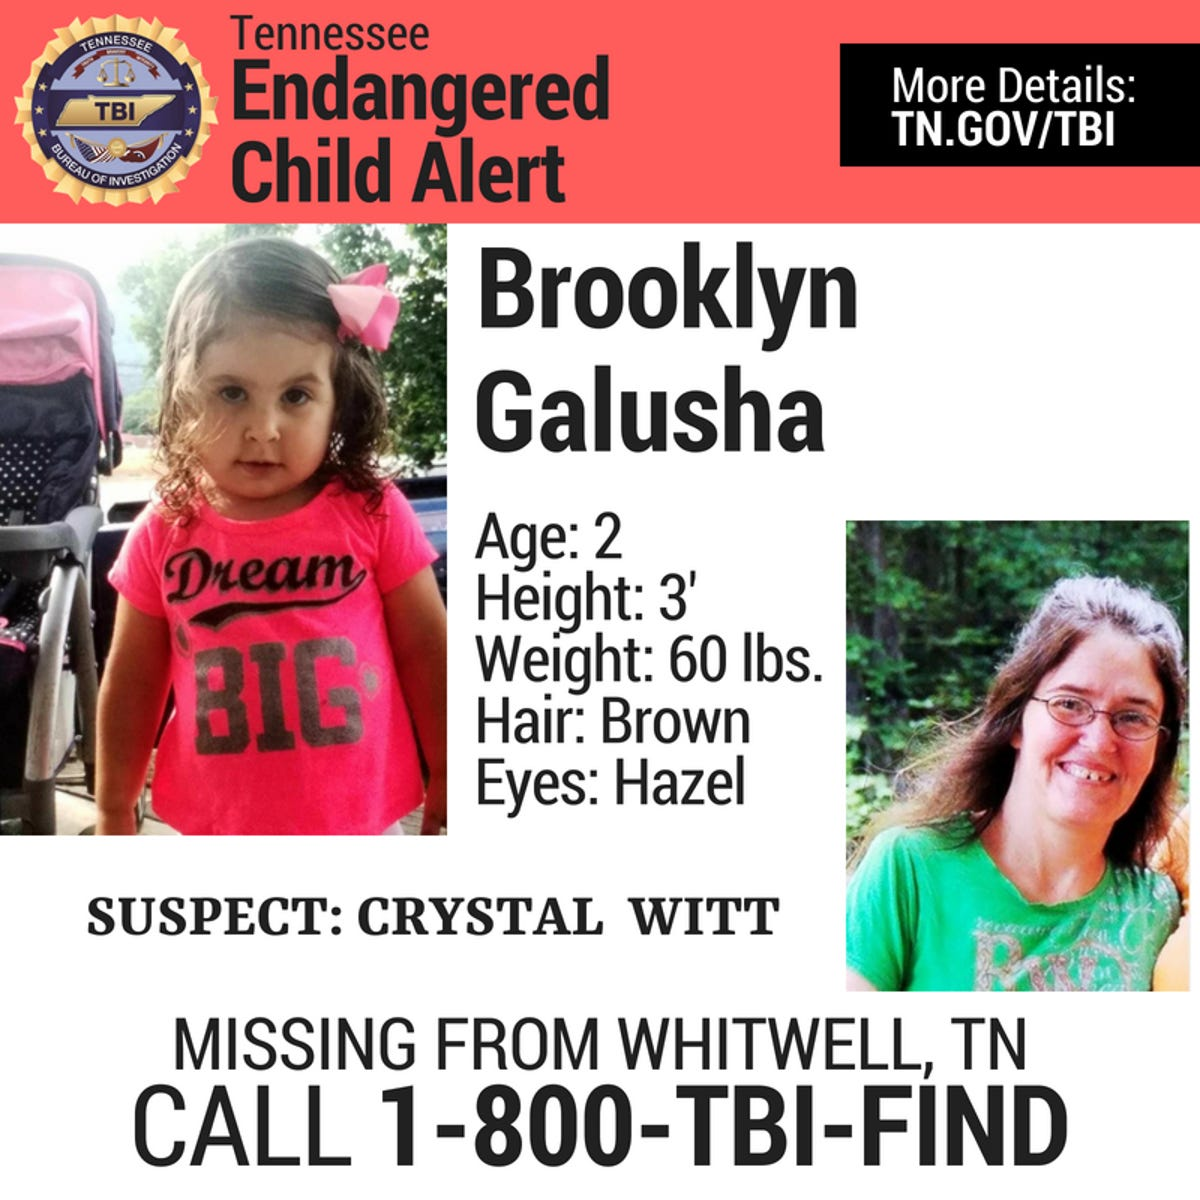 Tennessee missing child alert issued for Brooklyn Jade Galusha